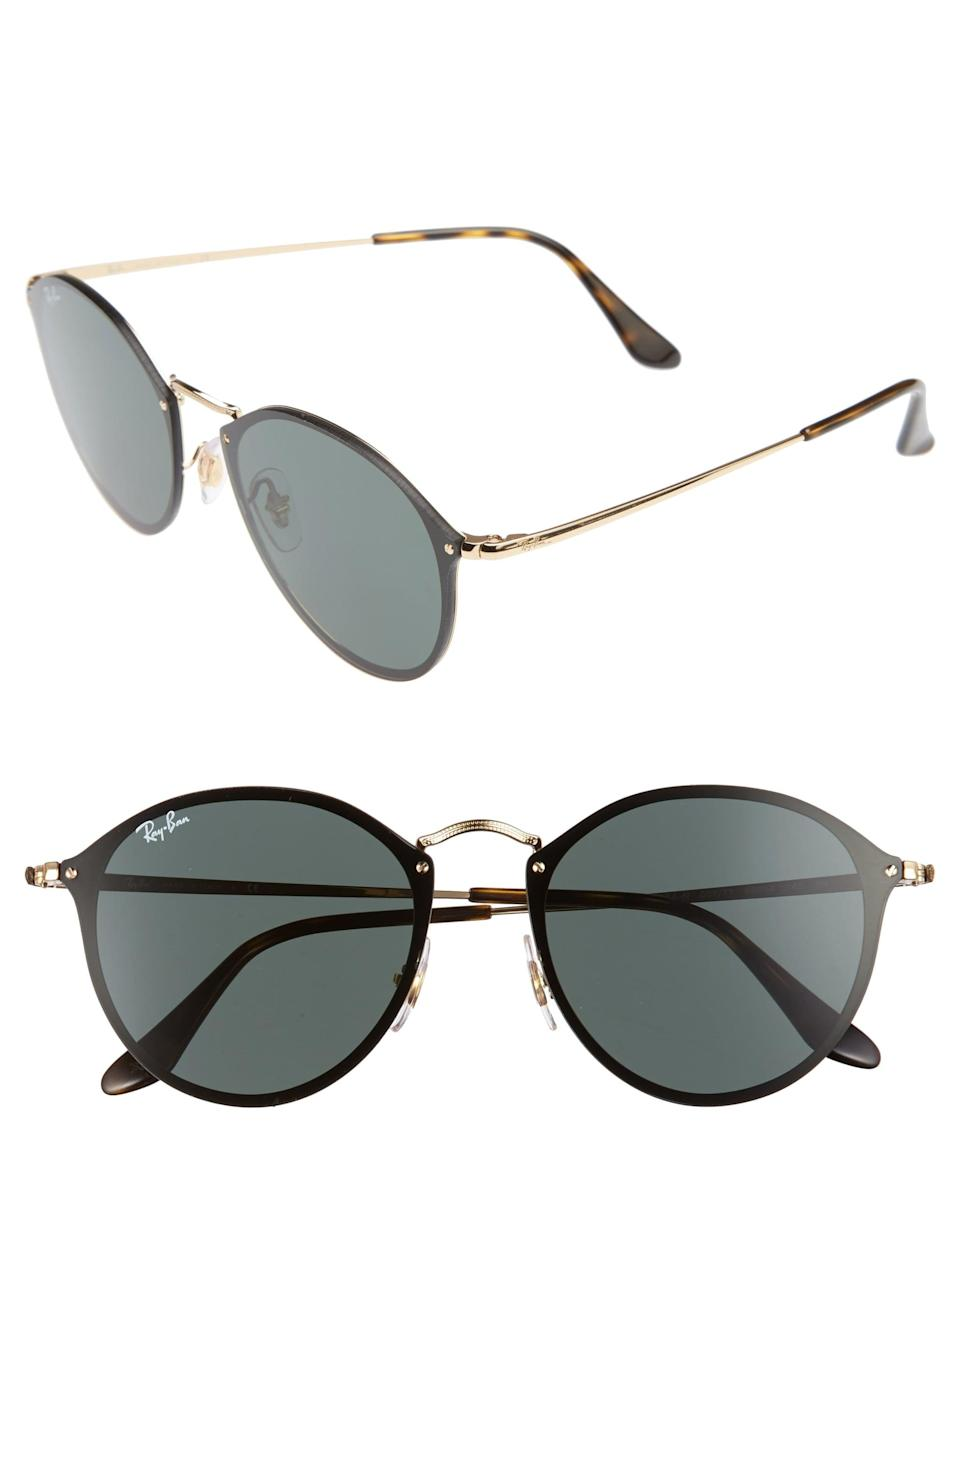 <p>Bright summer days call for wearing the <span>Ray-Ban Blaze Round Sunglasses</span> ($175) to protect your eyes.</p>